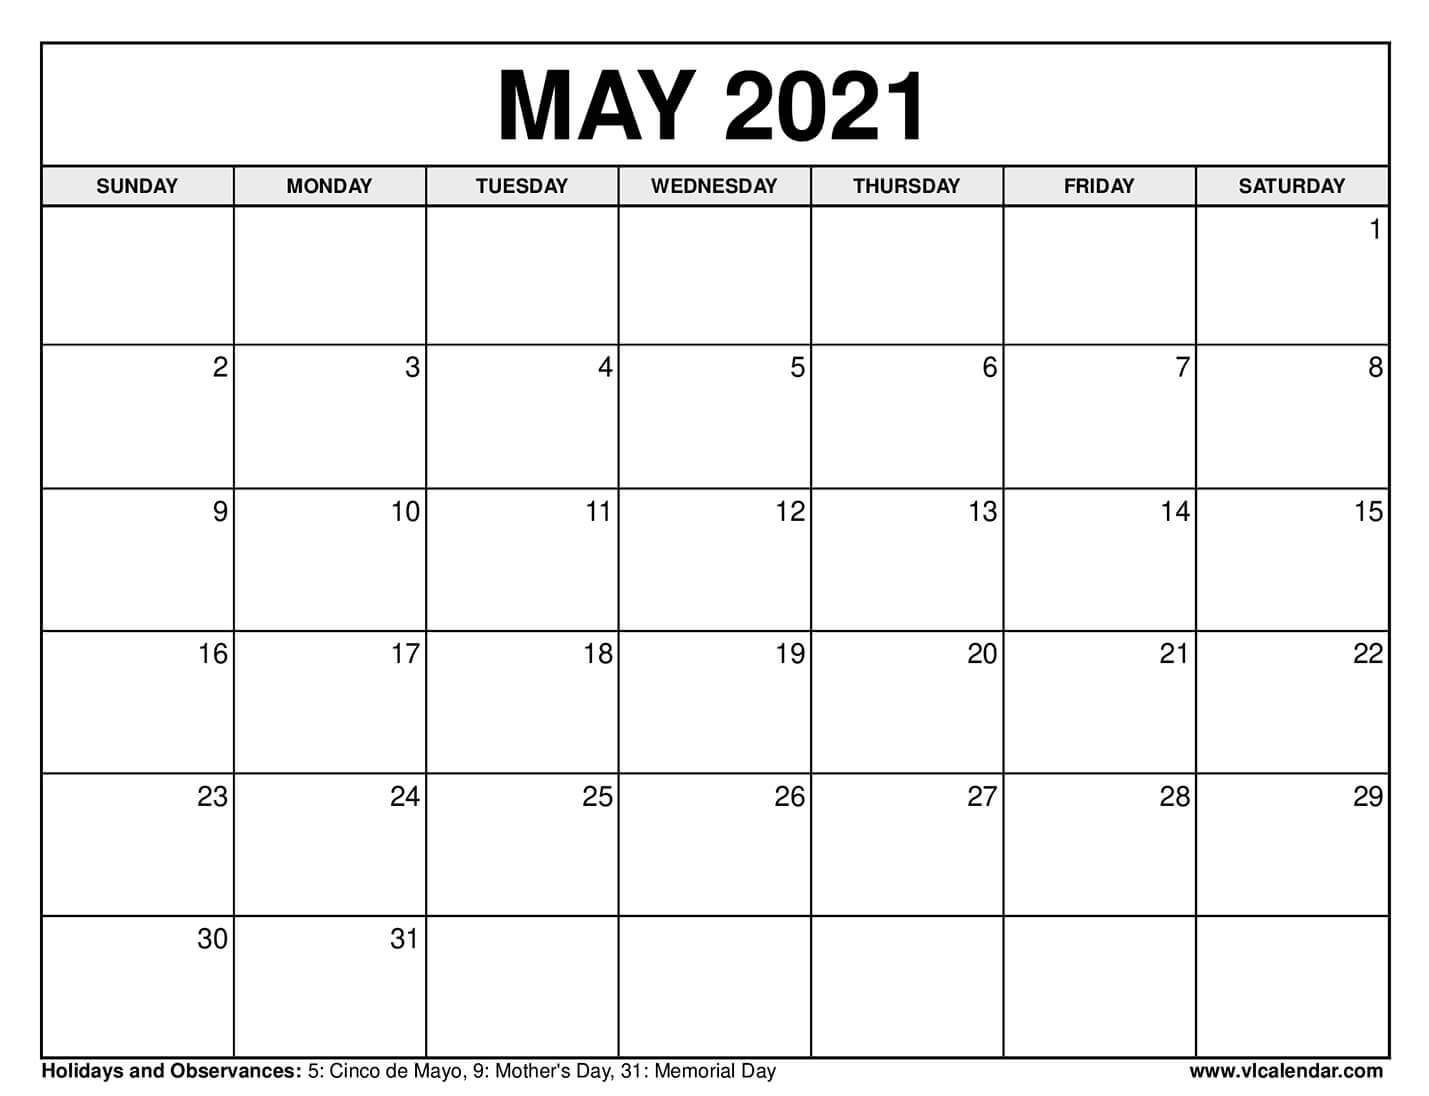 Pictures of May 2021 Weekly Calendar